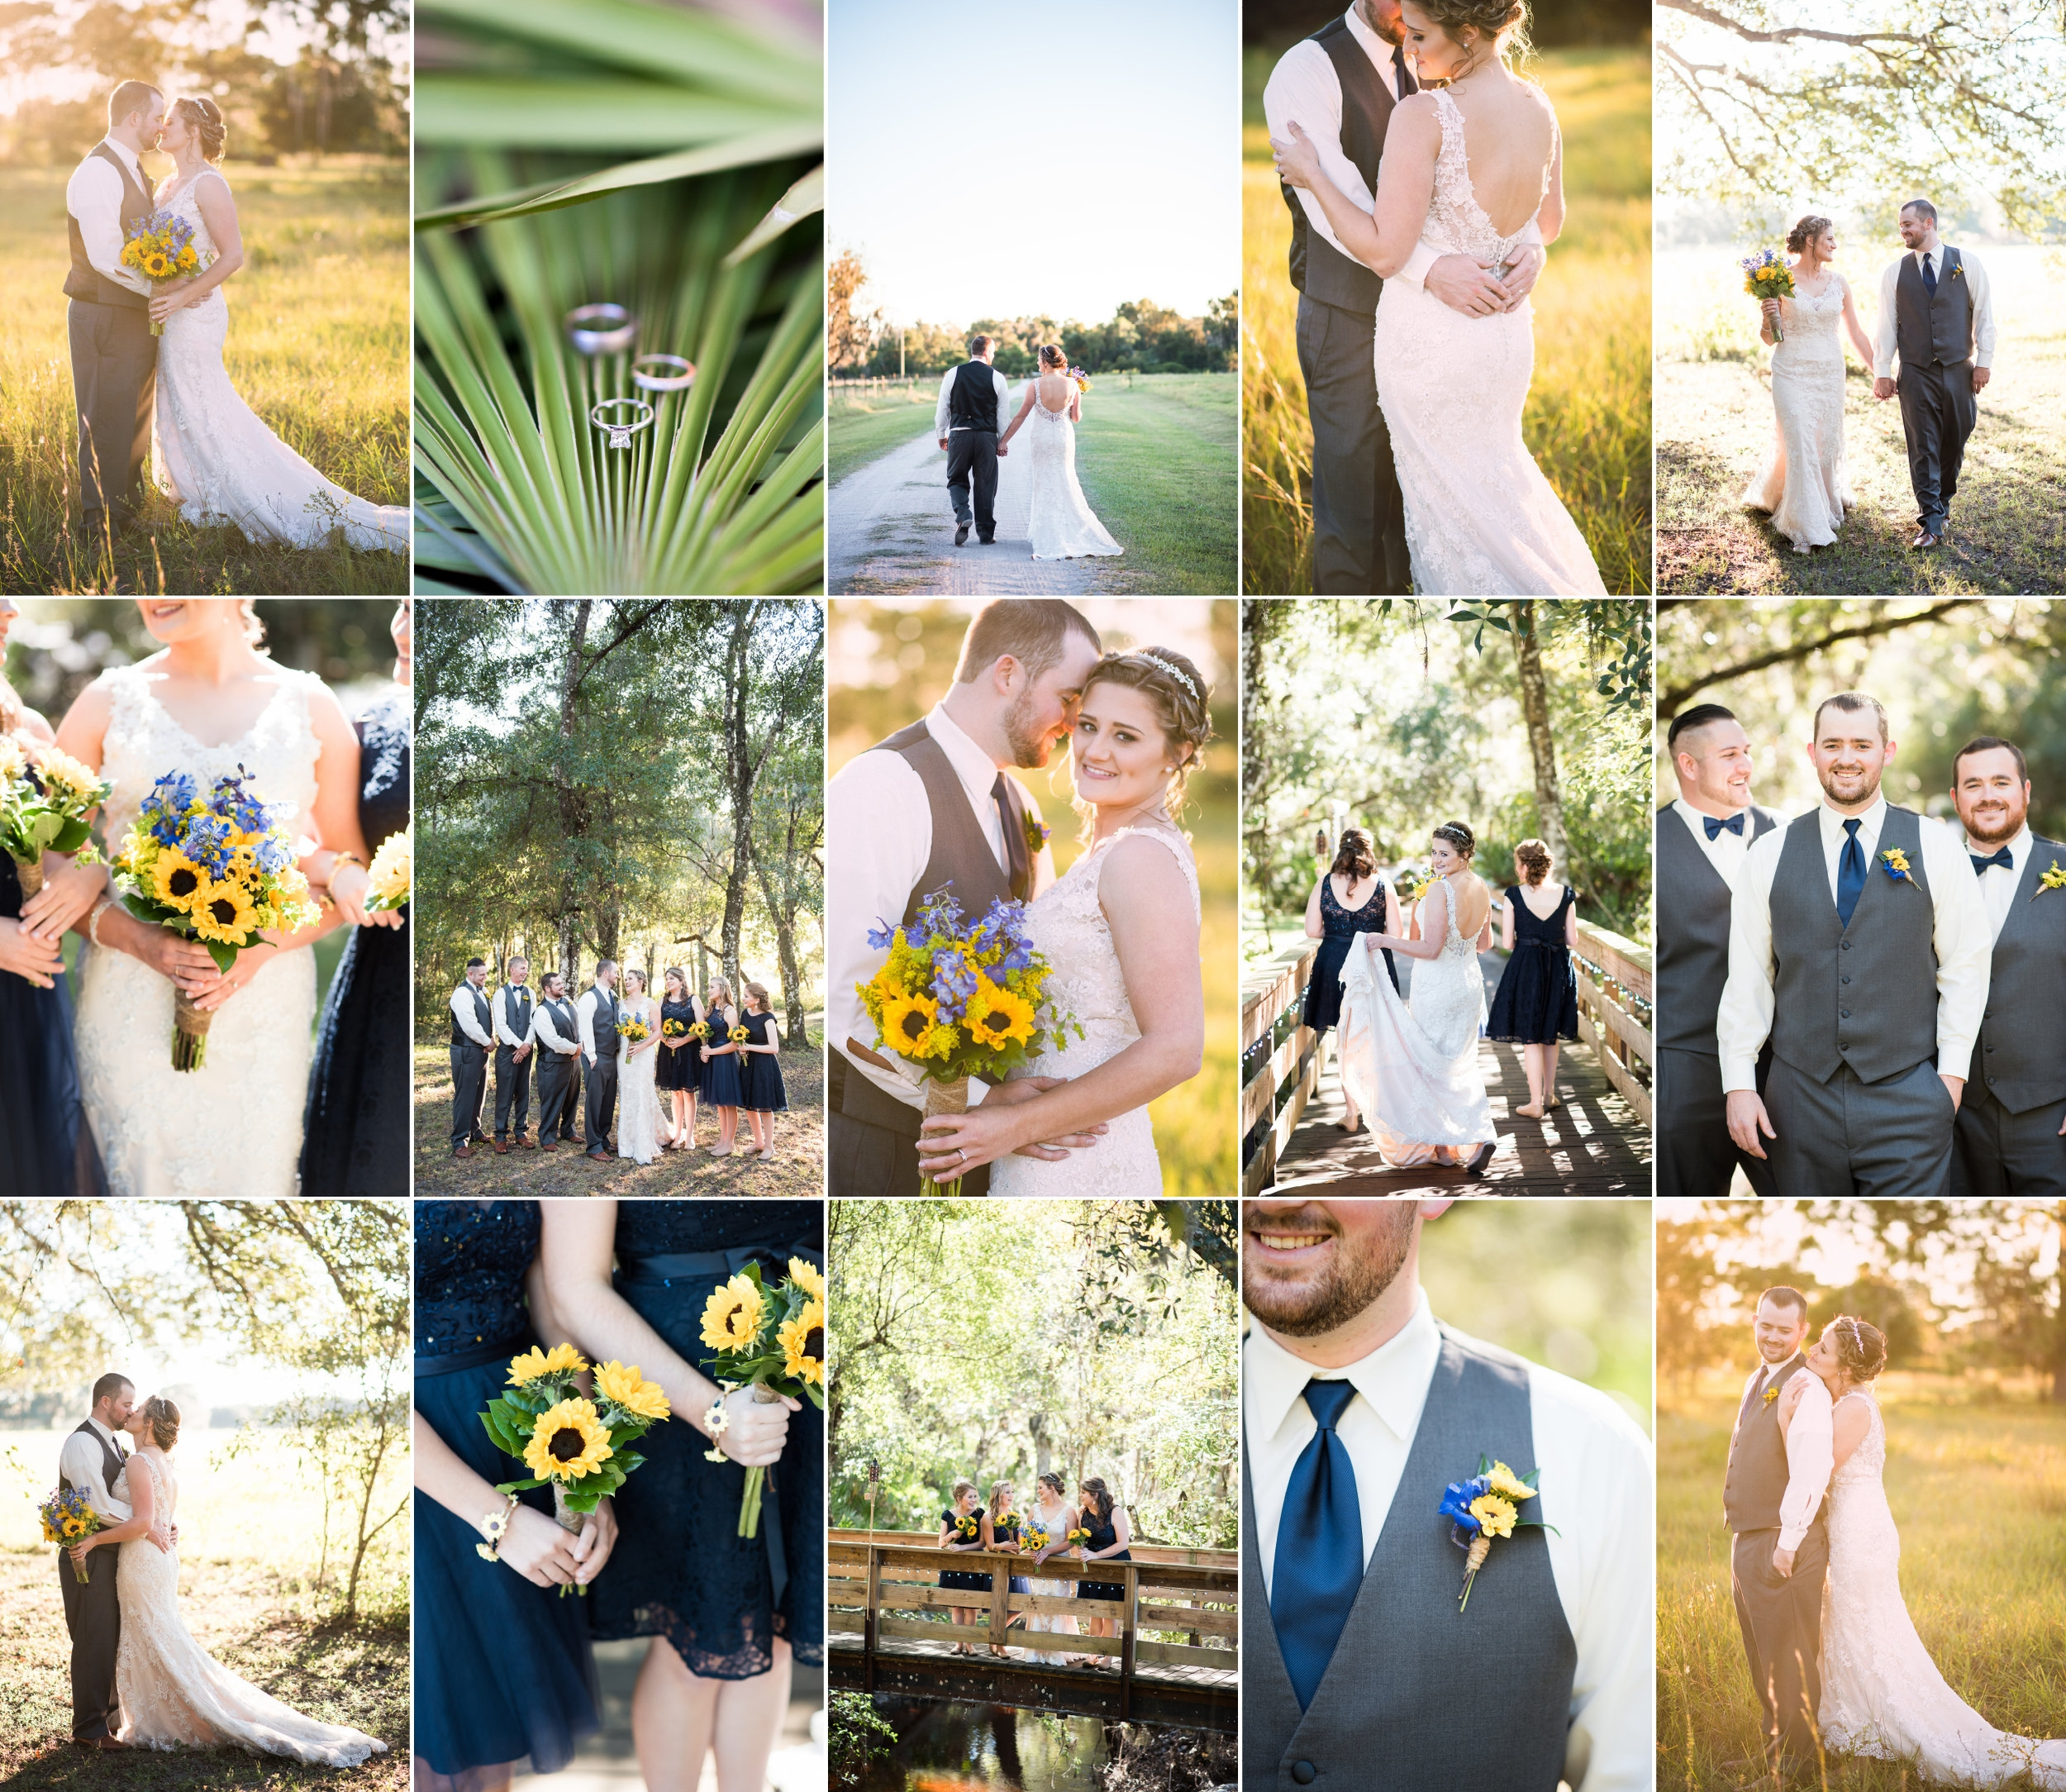 Mckenna + Tyler — Horse Creek Camp Wedding Photography in Ona, FL with Caroline Maxcy Photography